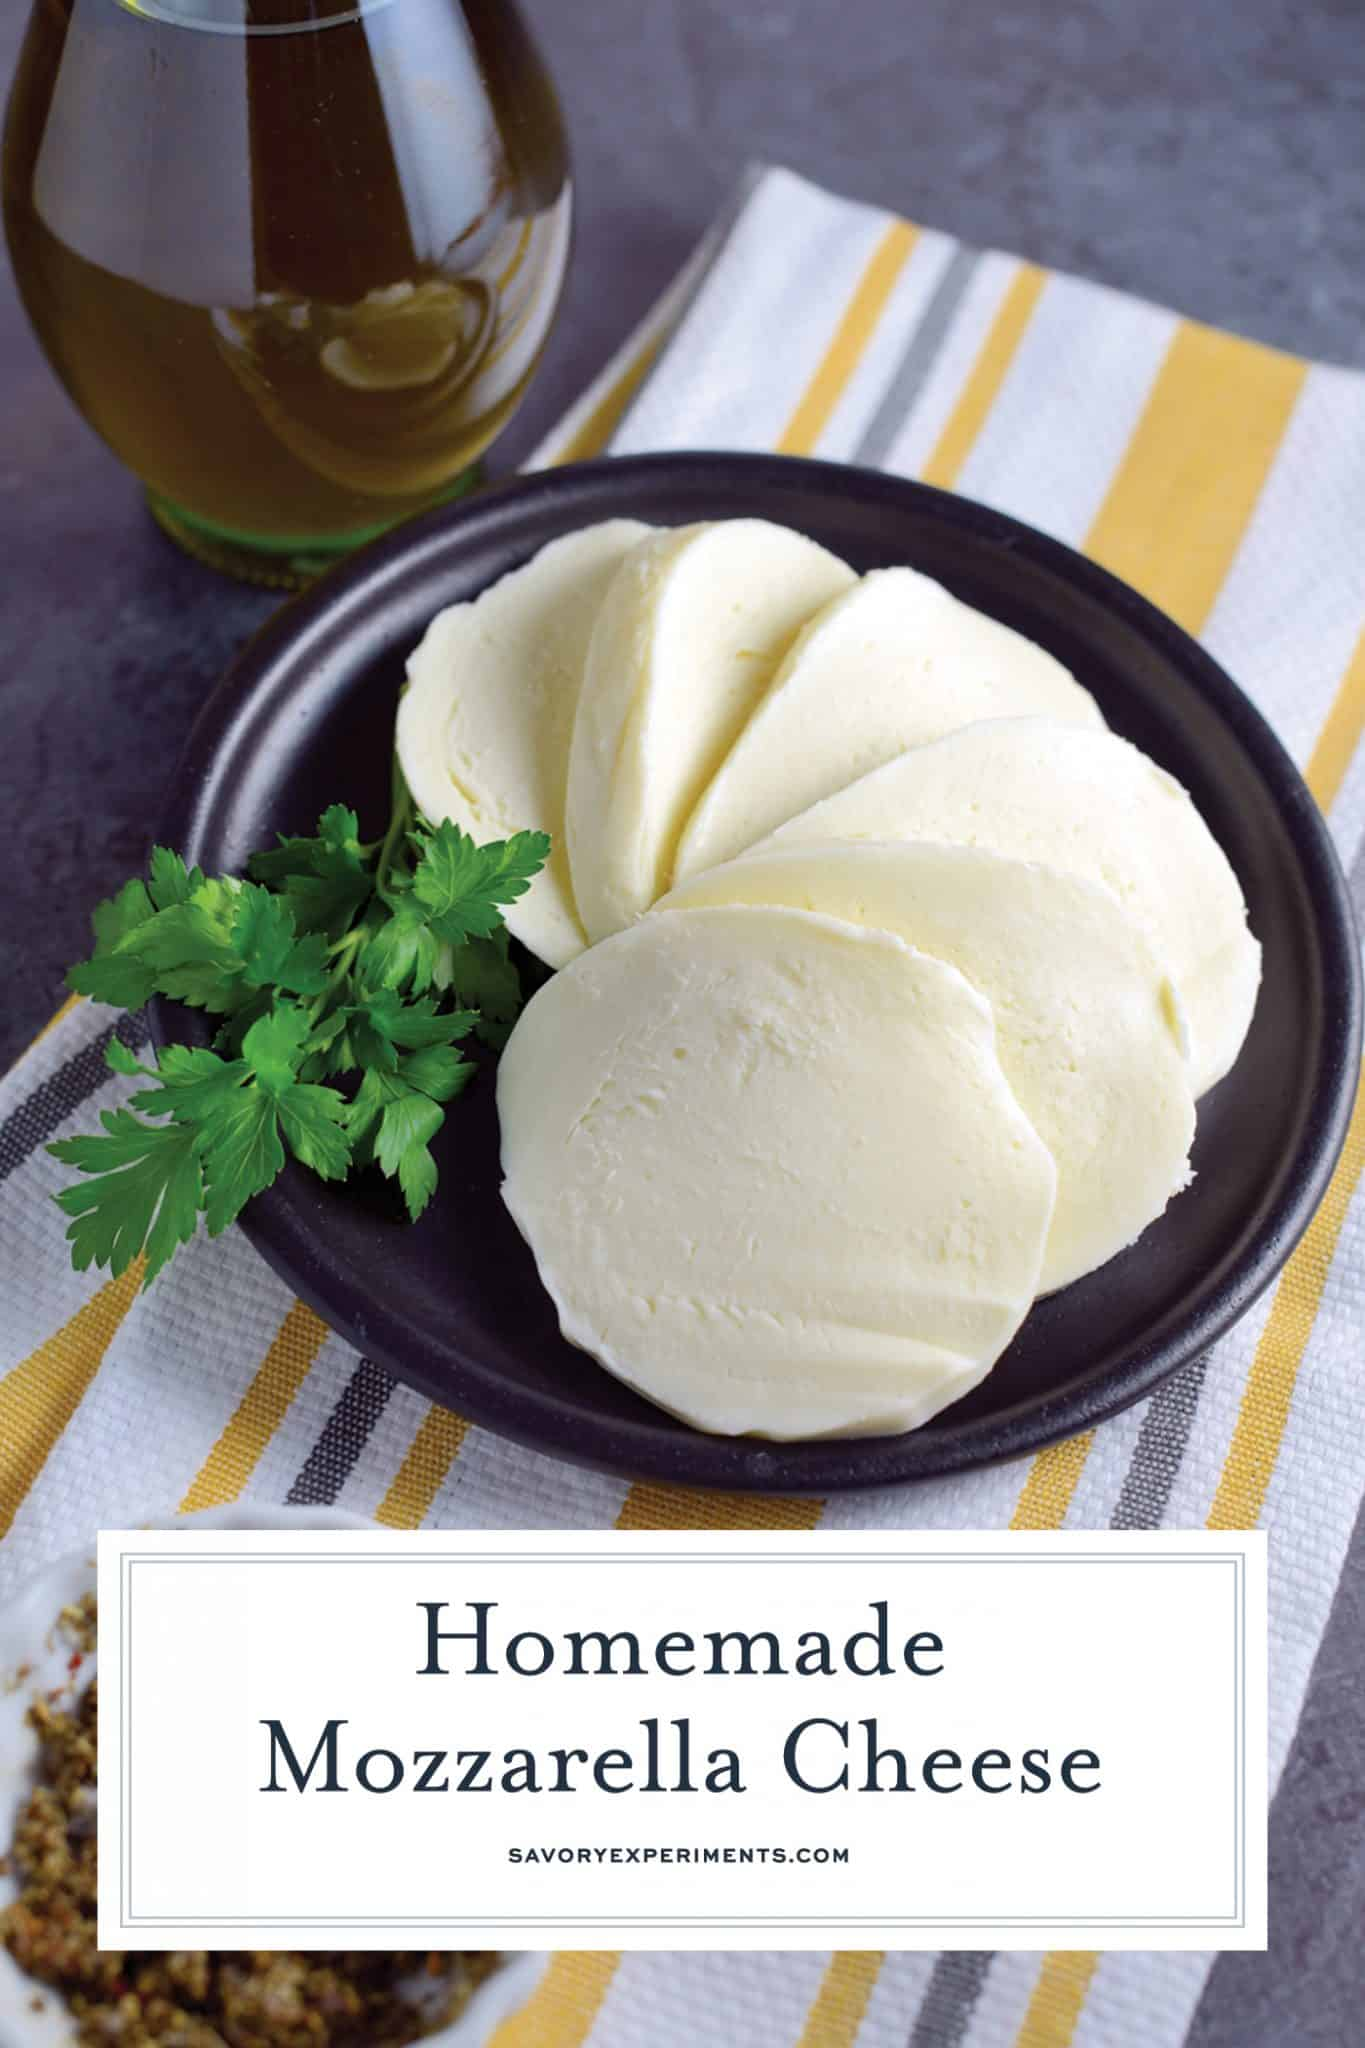 Homemade Mozzarella Cheese is a mix of science and cooking. With a velvety texture and packed with flavor, you will be making it all the time. #homemademozzarellacheese #mozzarella #cheese www.savoryexperiments.com